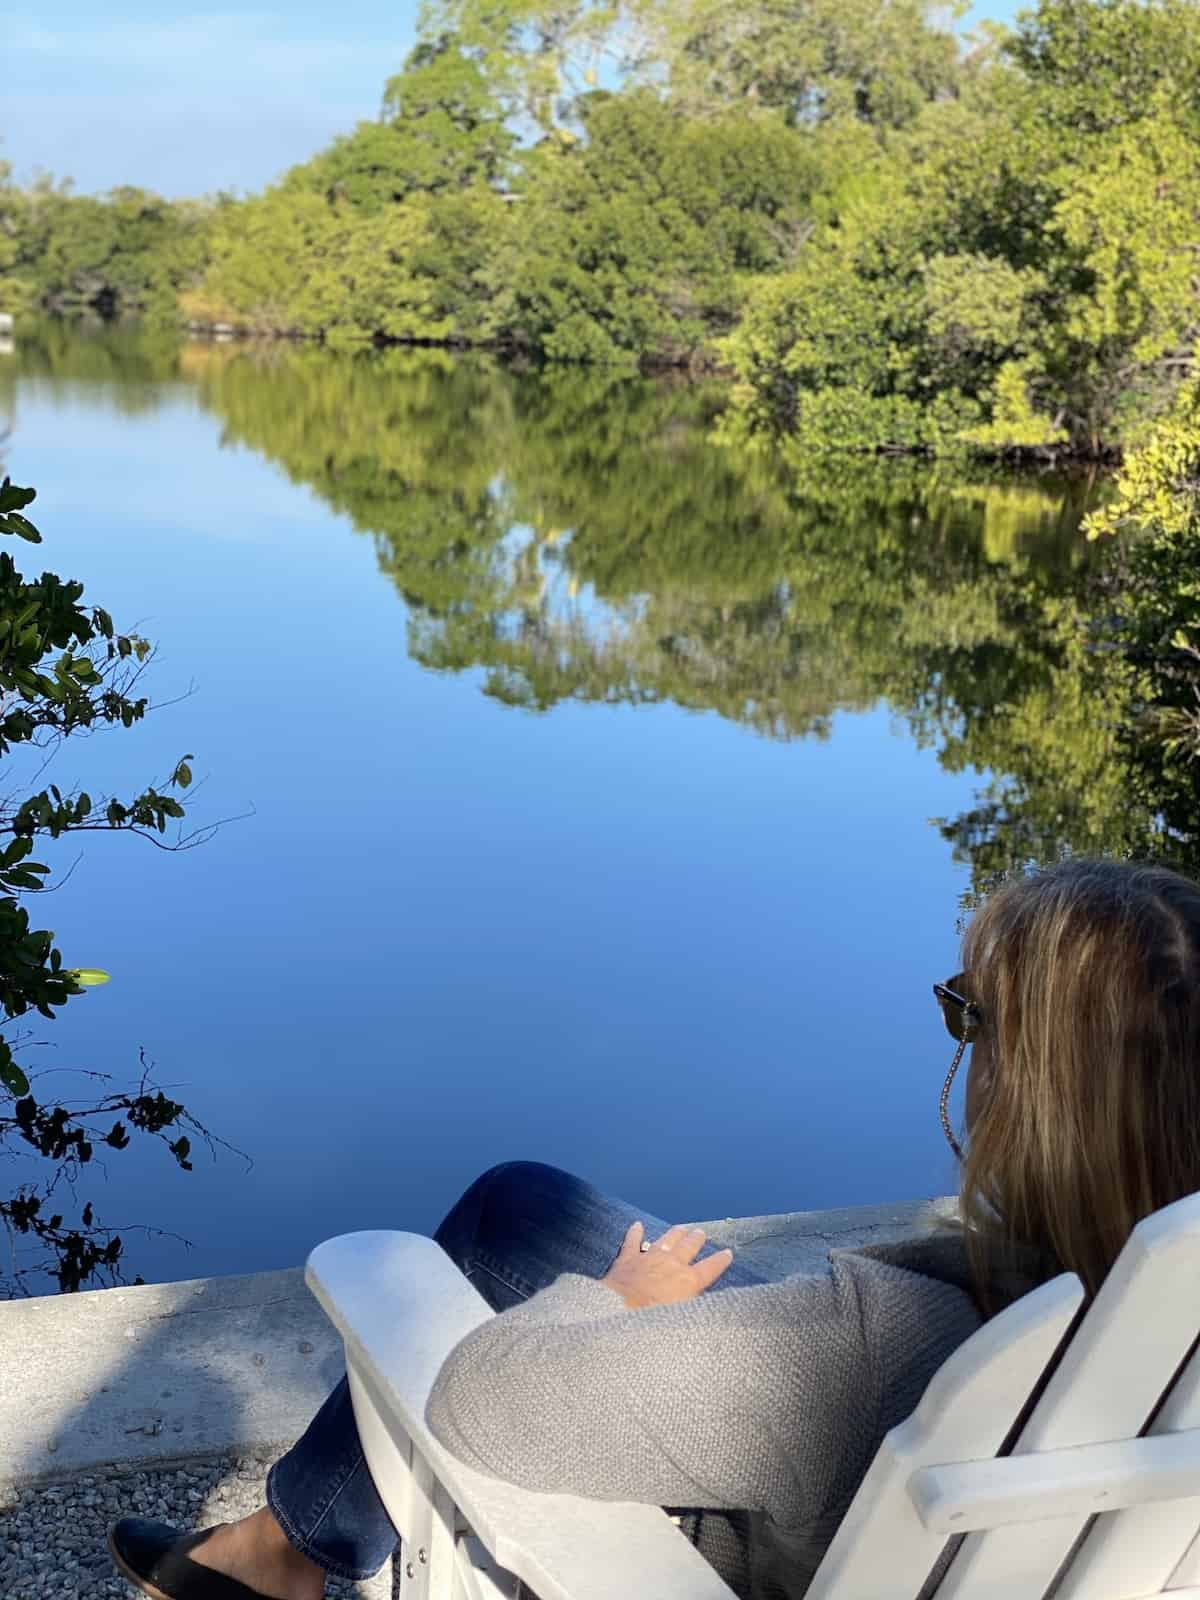 Woman sitting in white chair looking over river.